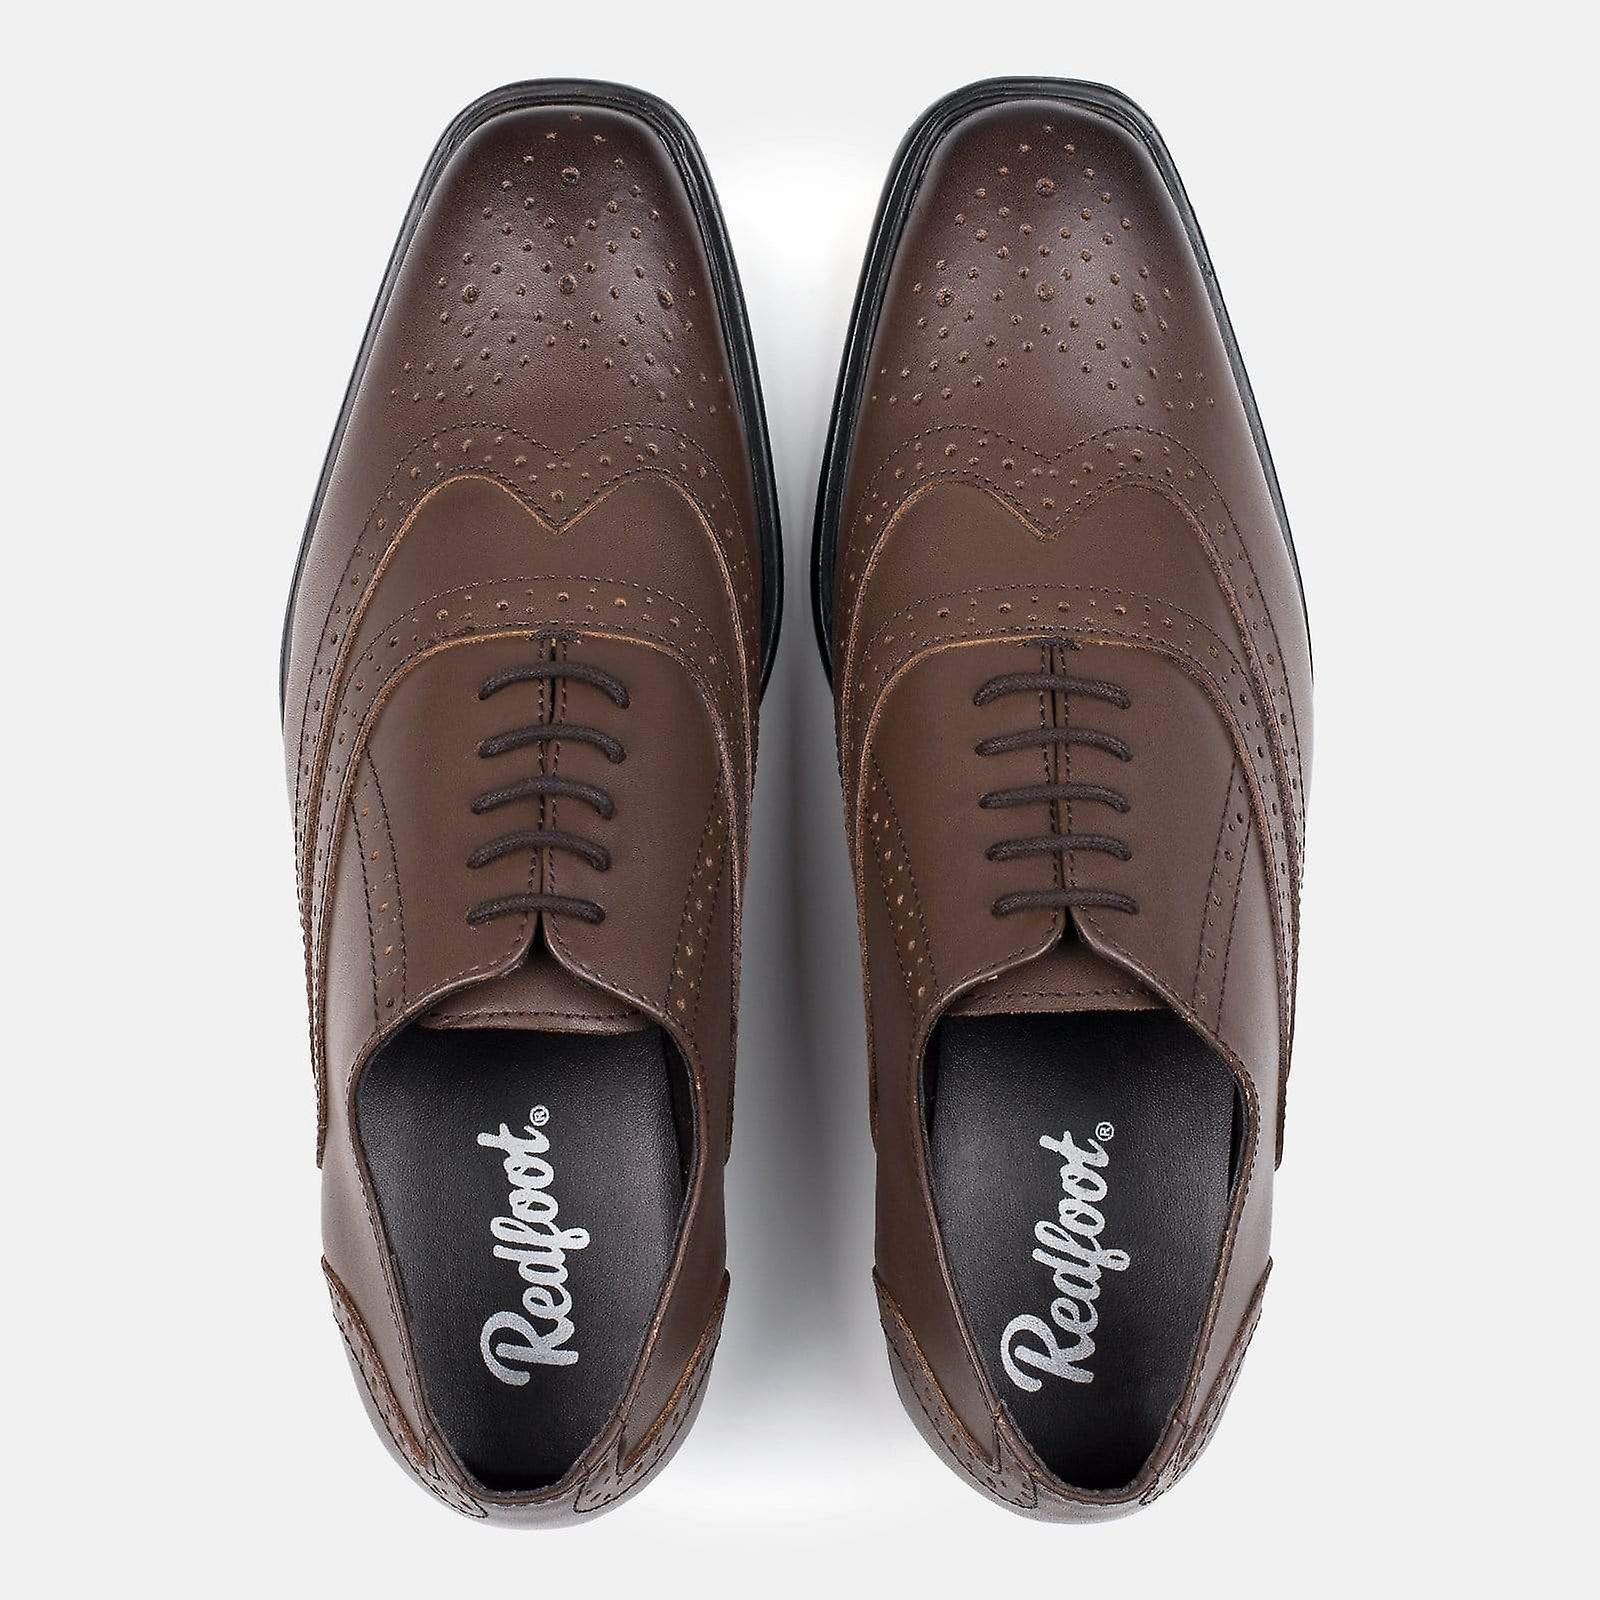 Mens brown leather oxford brogue shoe